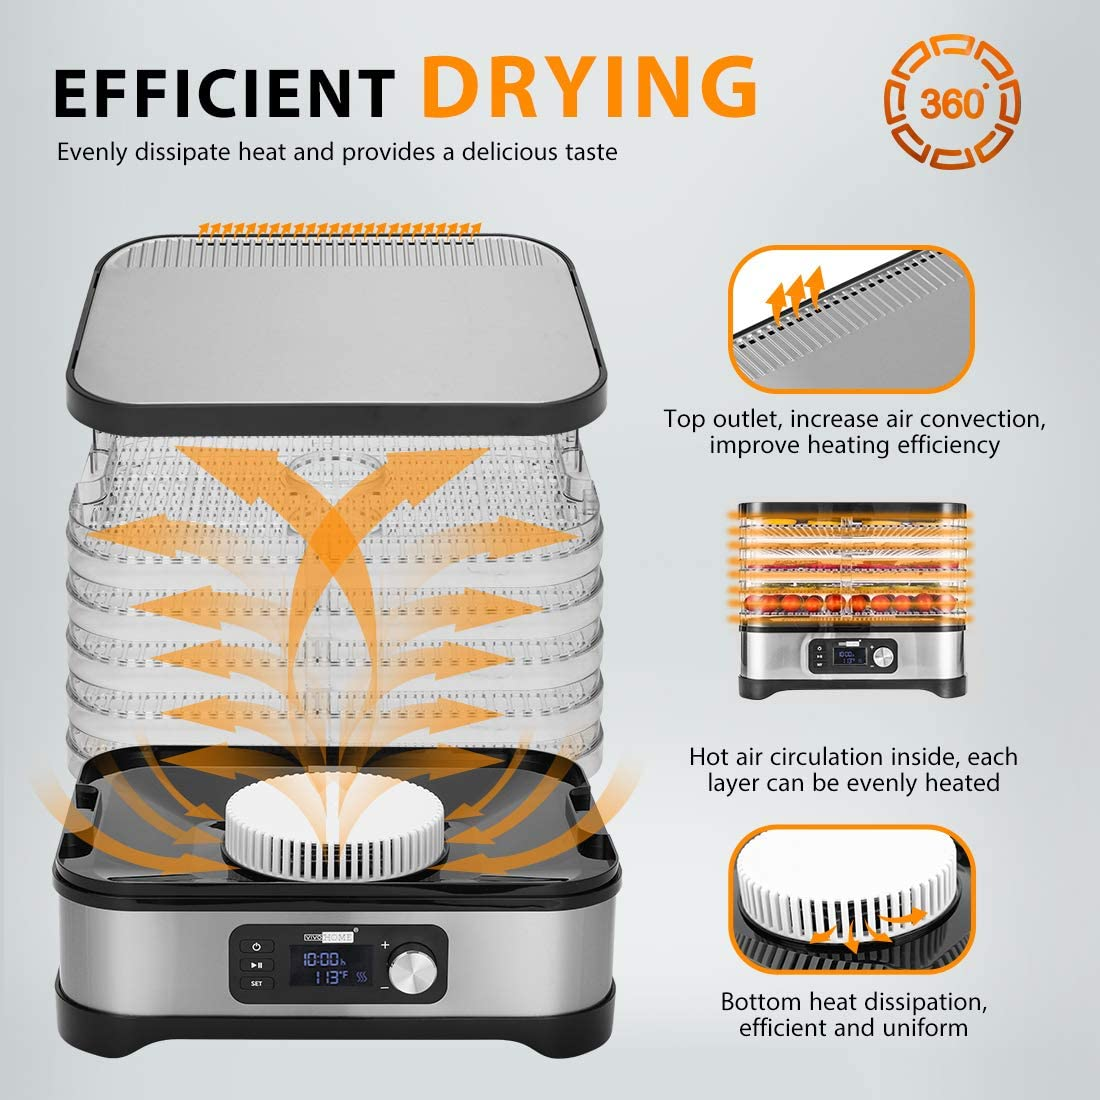 2021-dehydrating-machine-for-travel-use